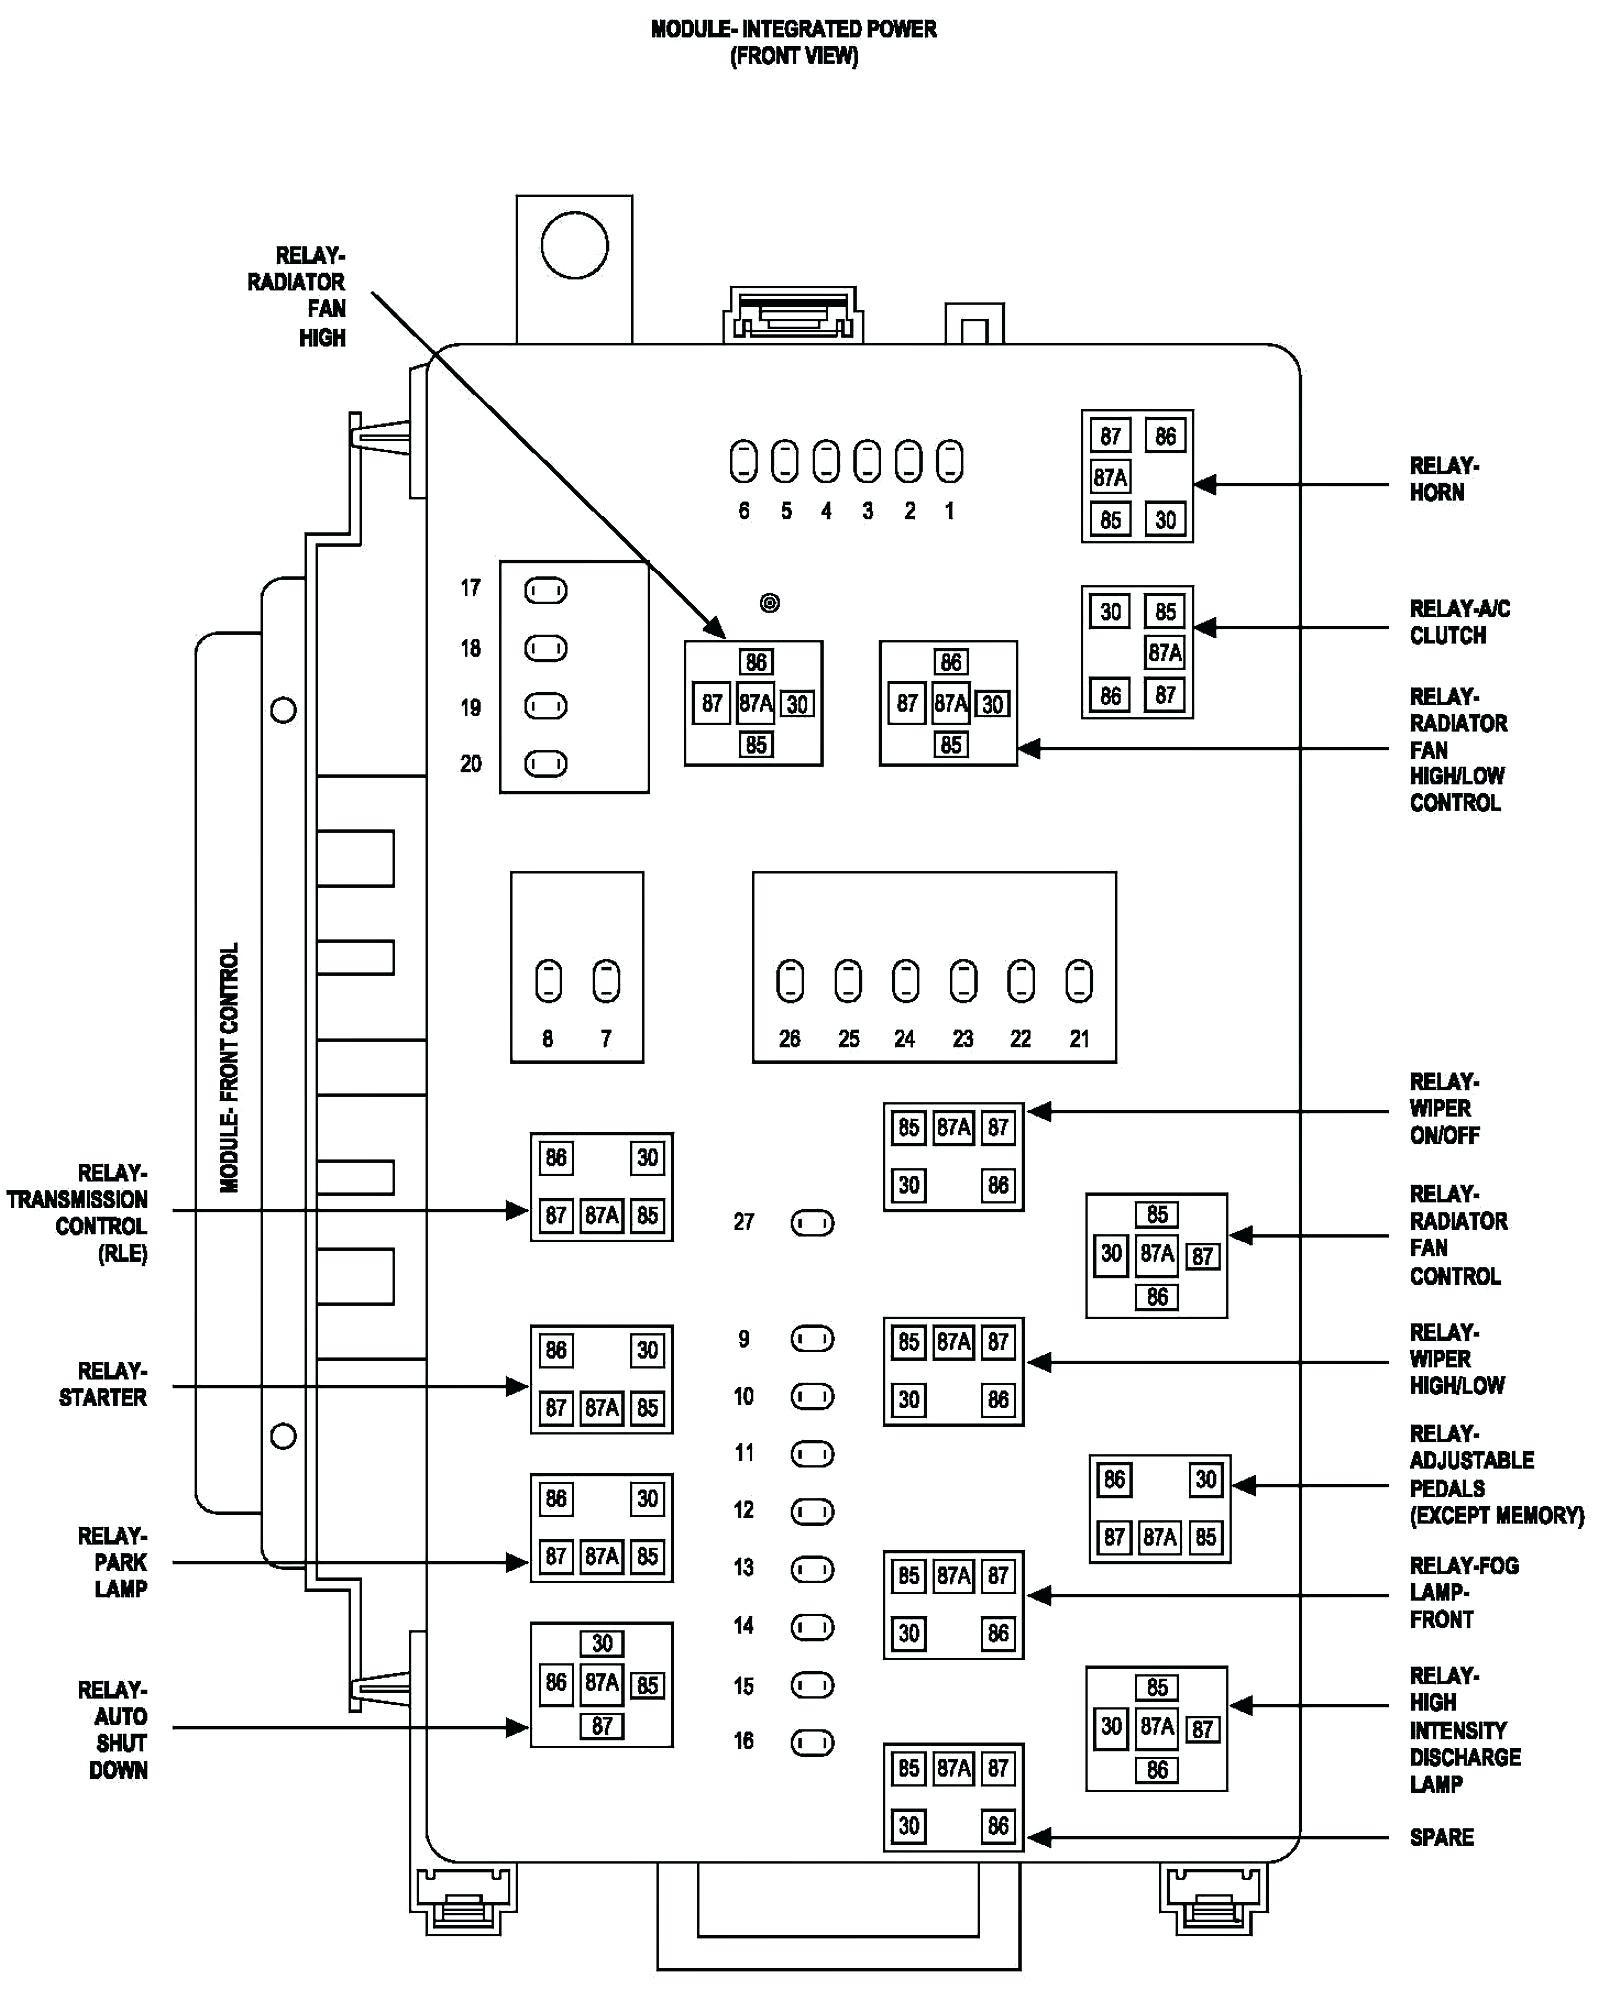 hight resolution of 1993 plymouth acclaim fuse box advance wiring diagram plymouth acclaim fuse box